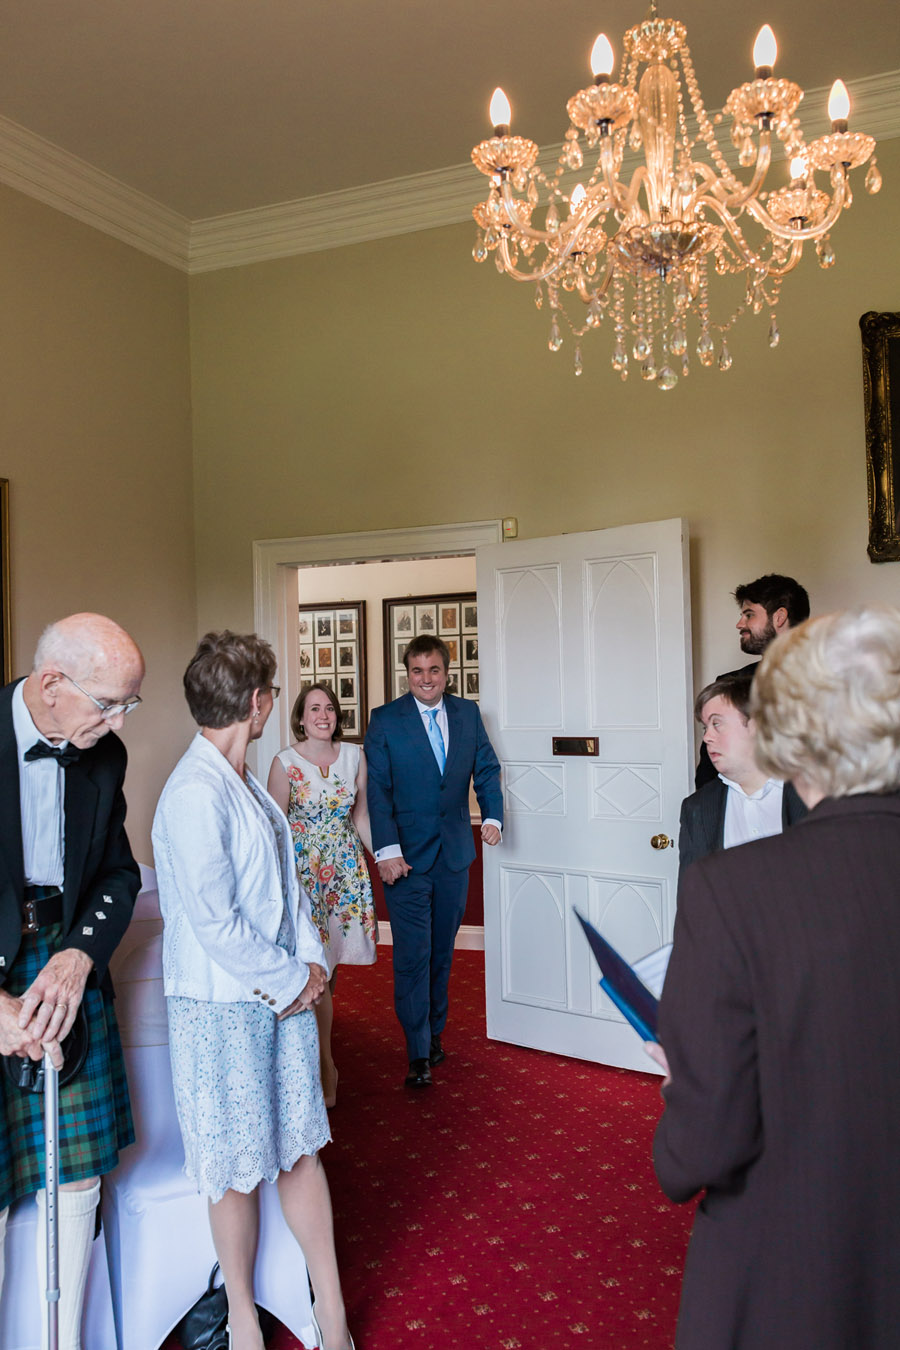 Hertford Castle intimate and alternative English wedding, photo credit Siobhan H Photography (5)